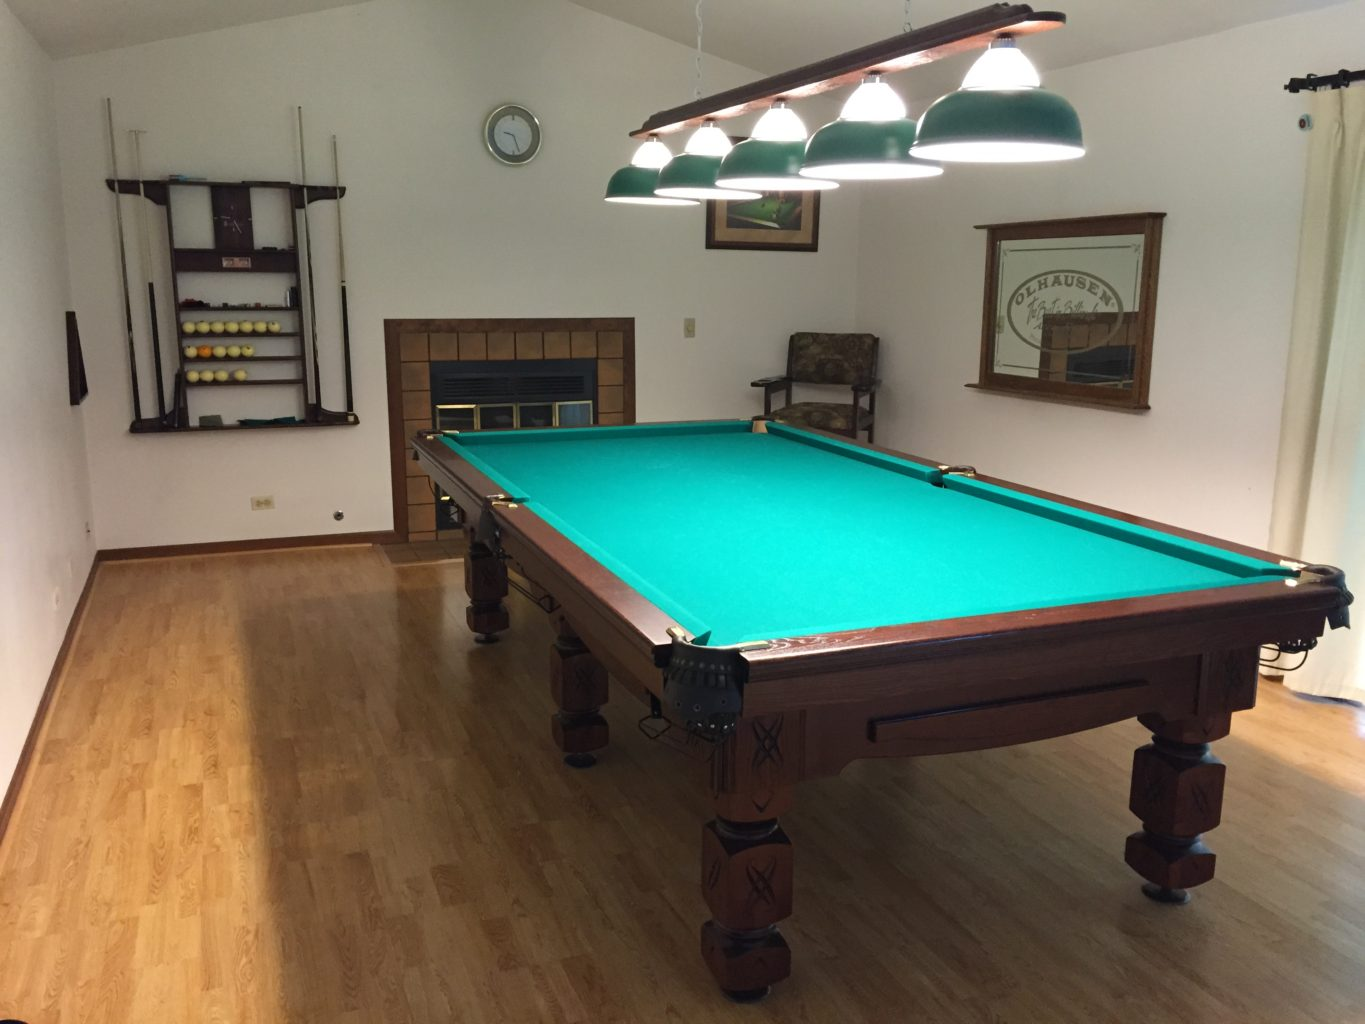 Olympus Pool Table, Illinois